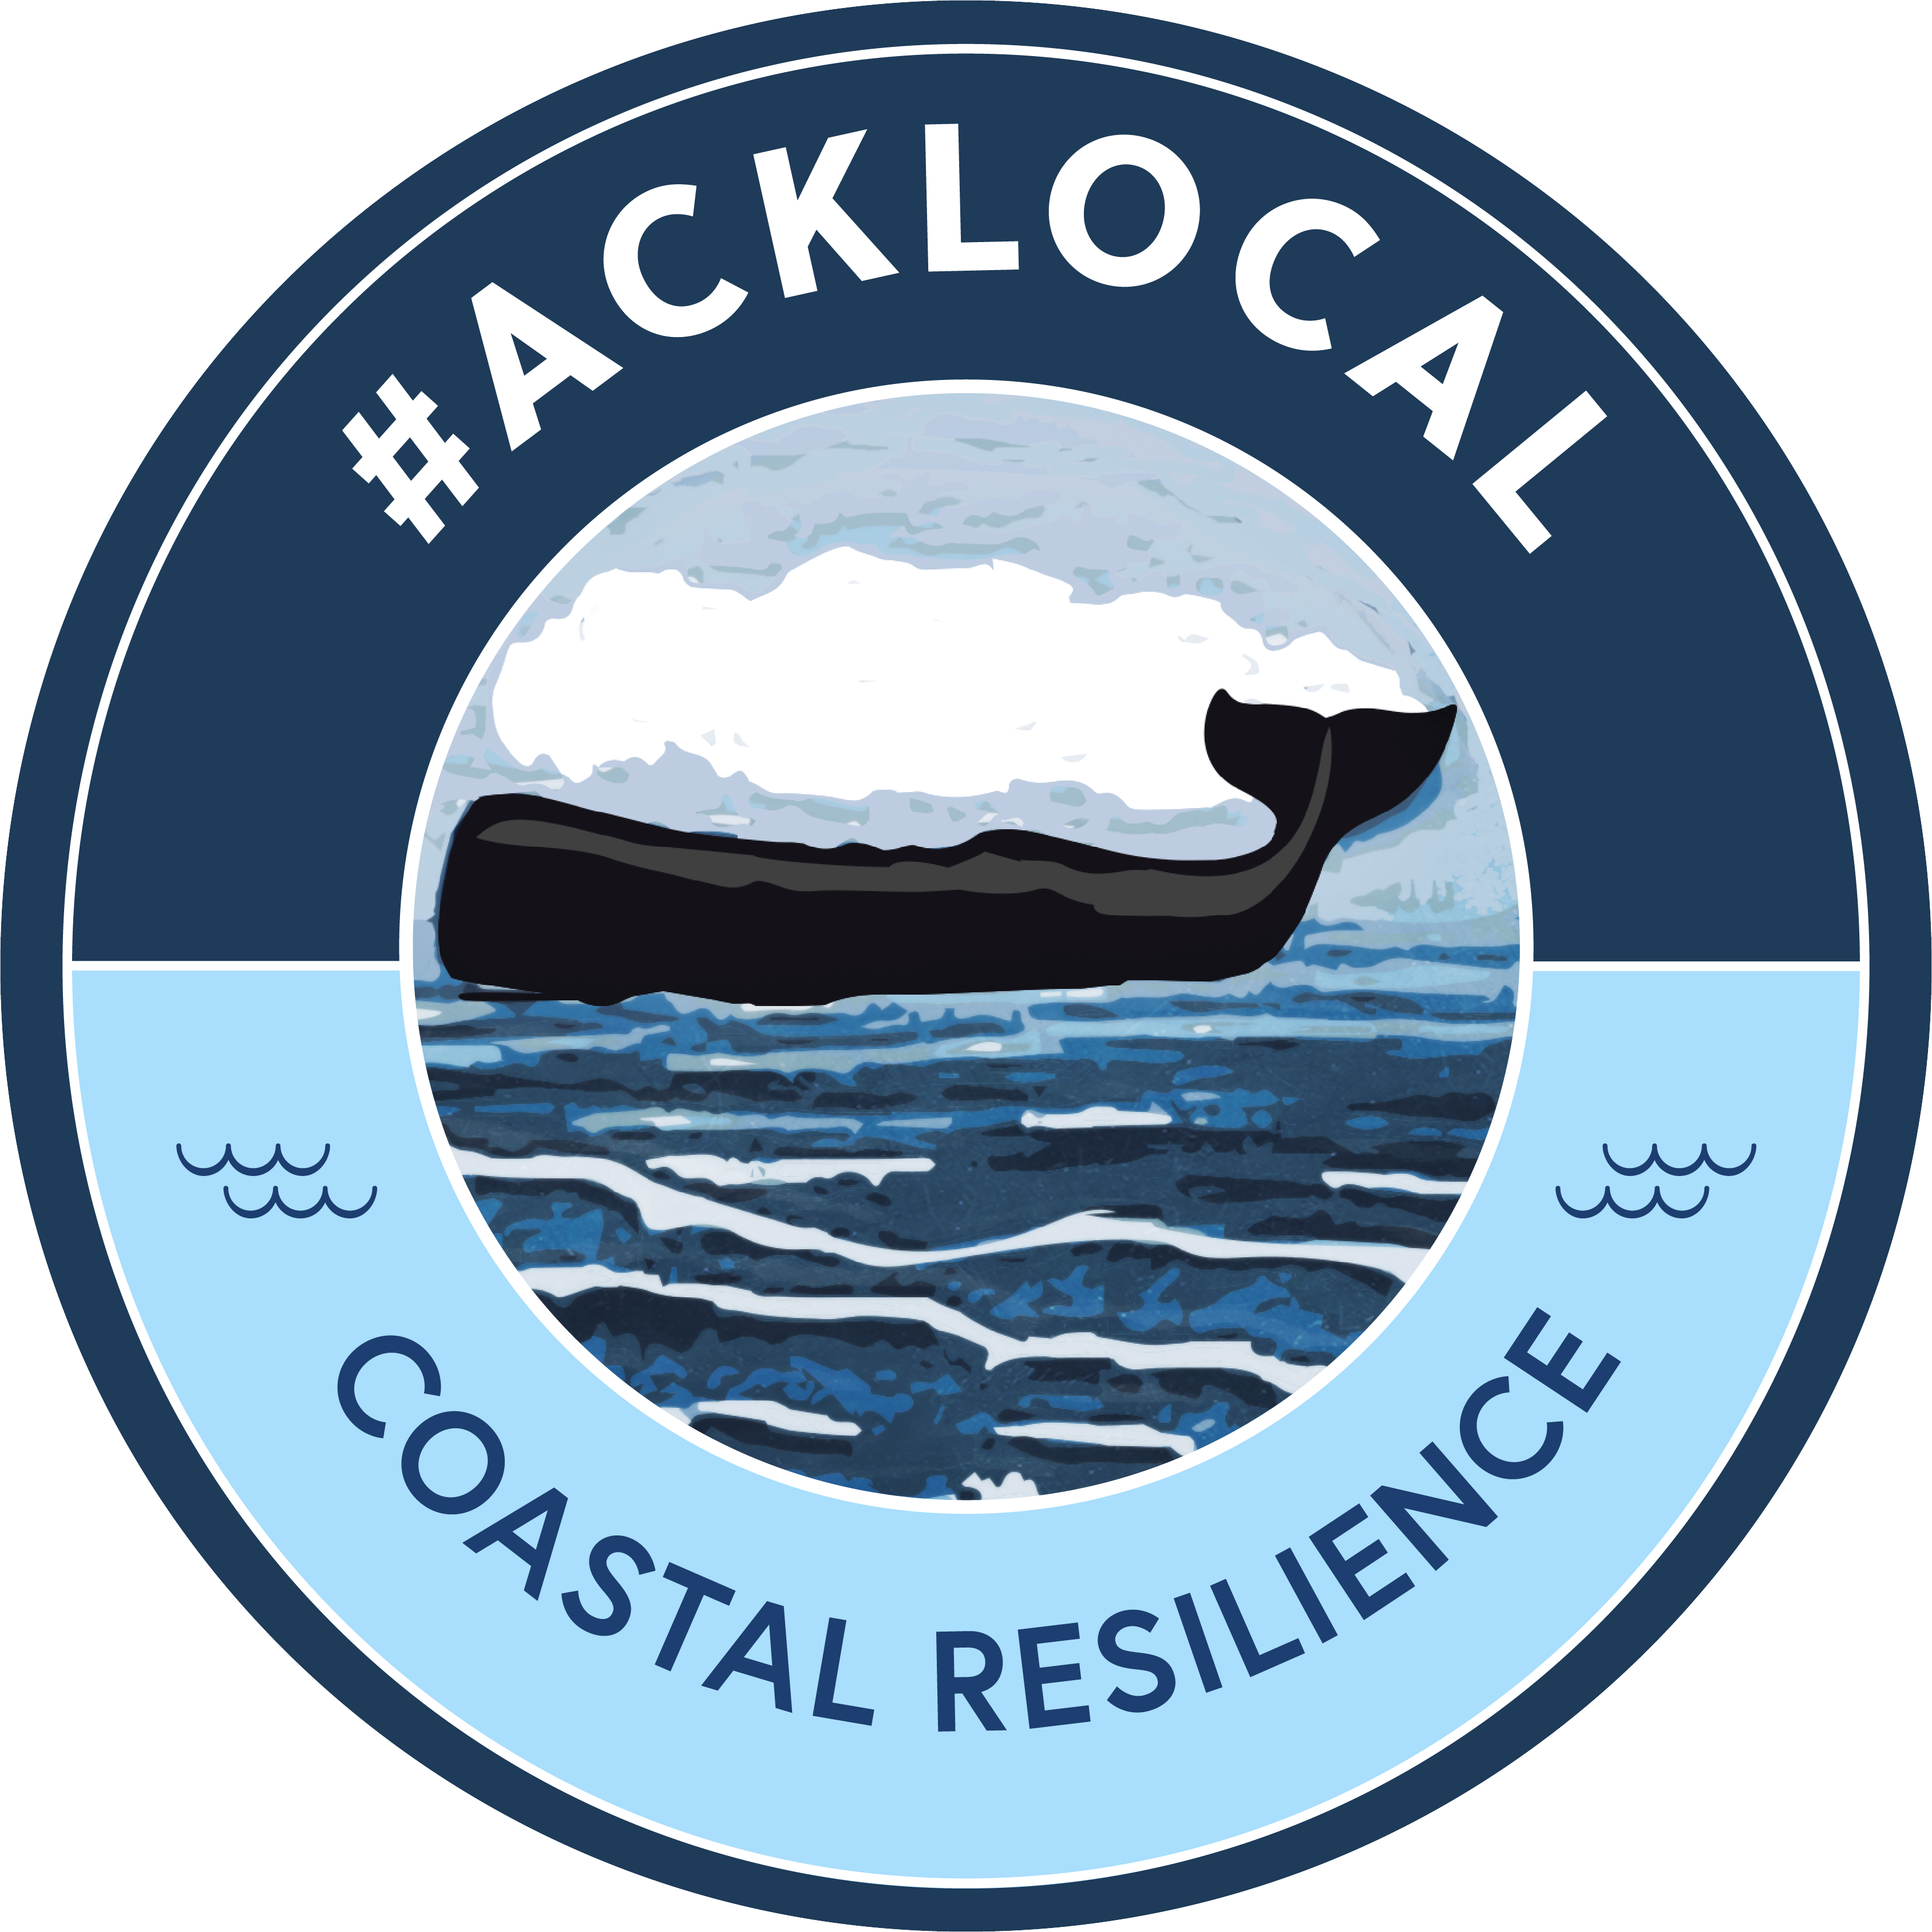 Cooastal Resilience logo